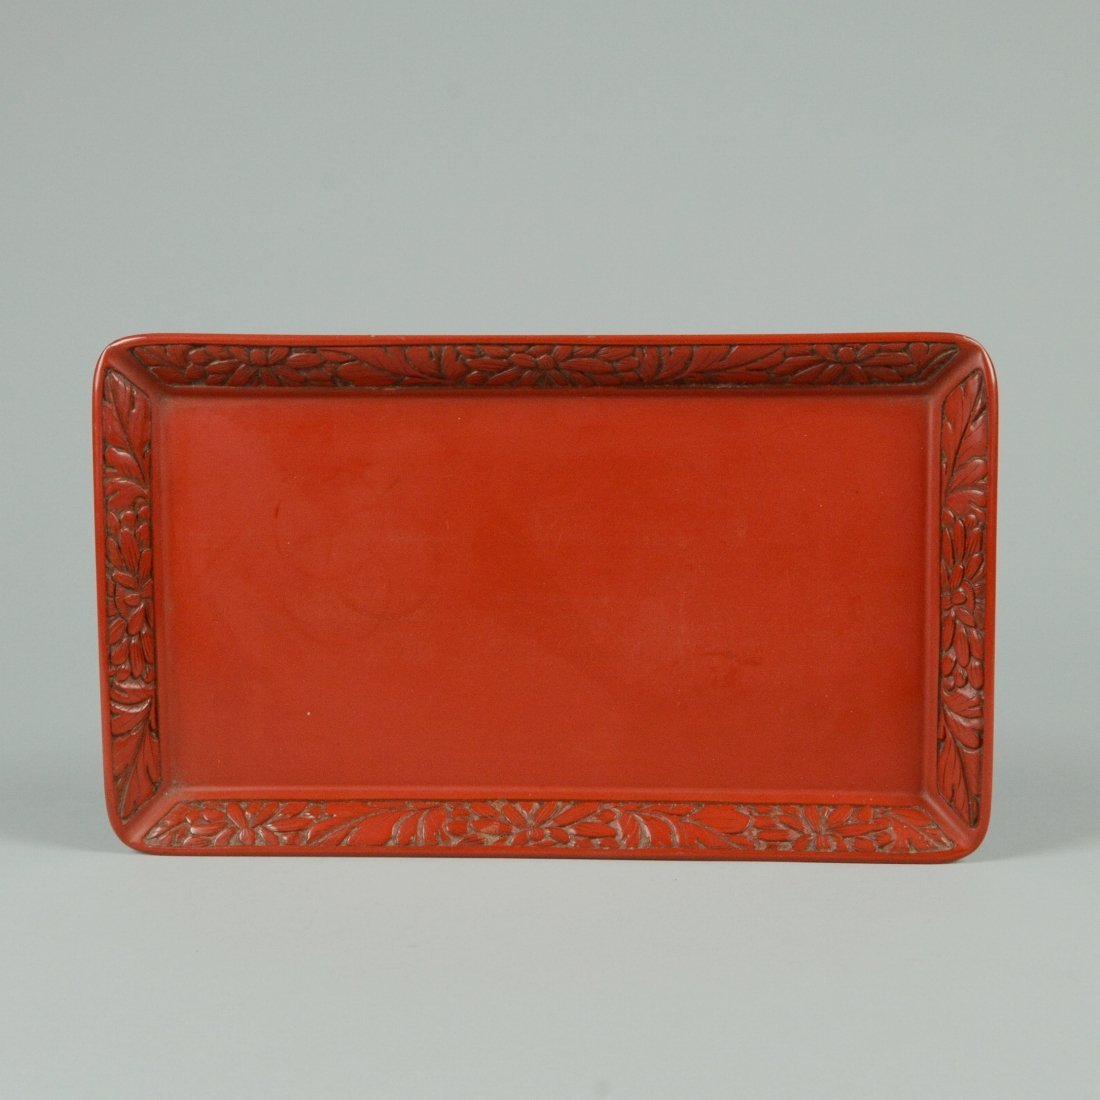 13: RED LACQUER TEA TRAY